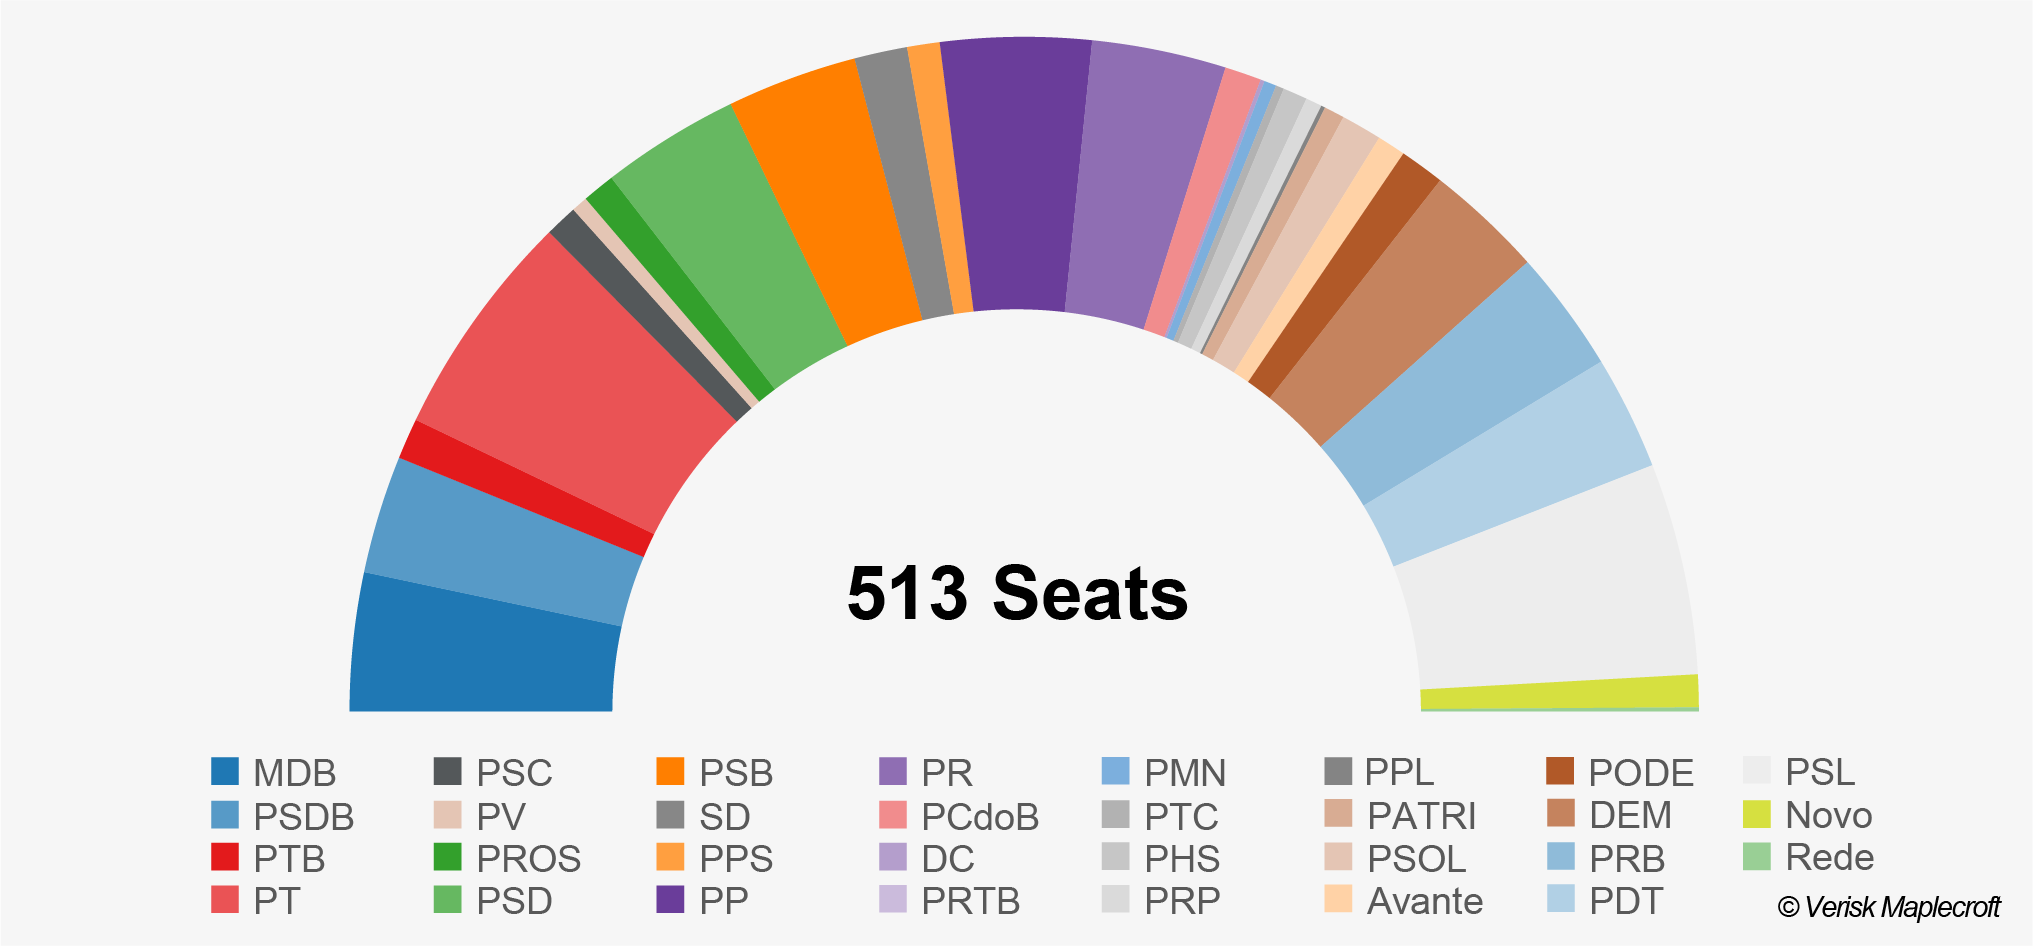 Political Landscape In Brazil: Composition Of The Chamber Of Deputies, 2019